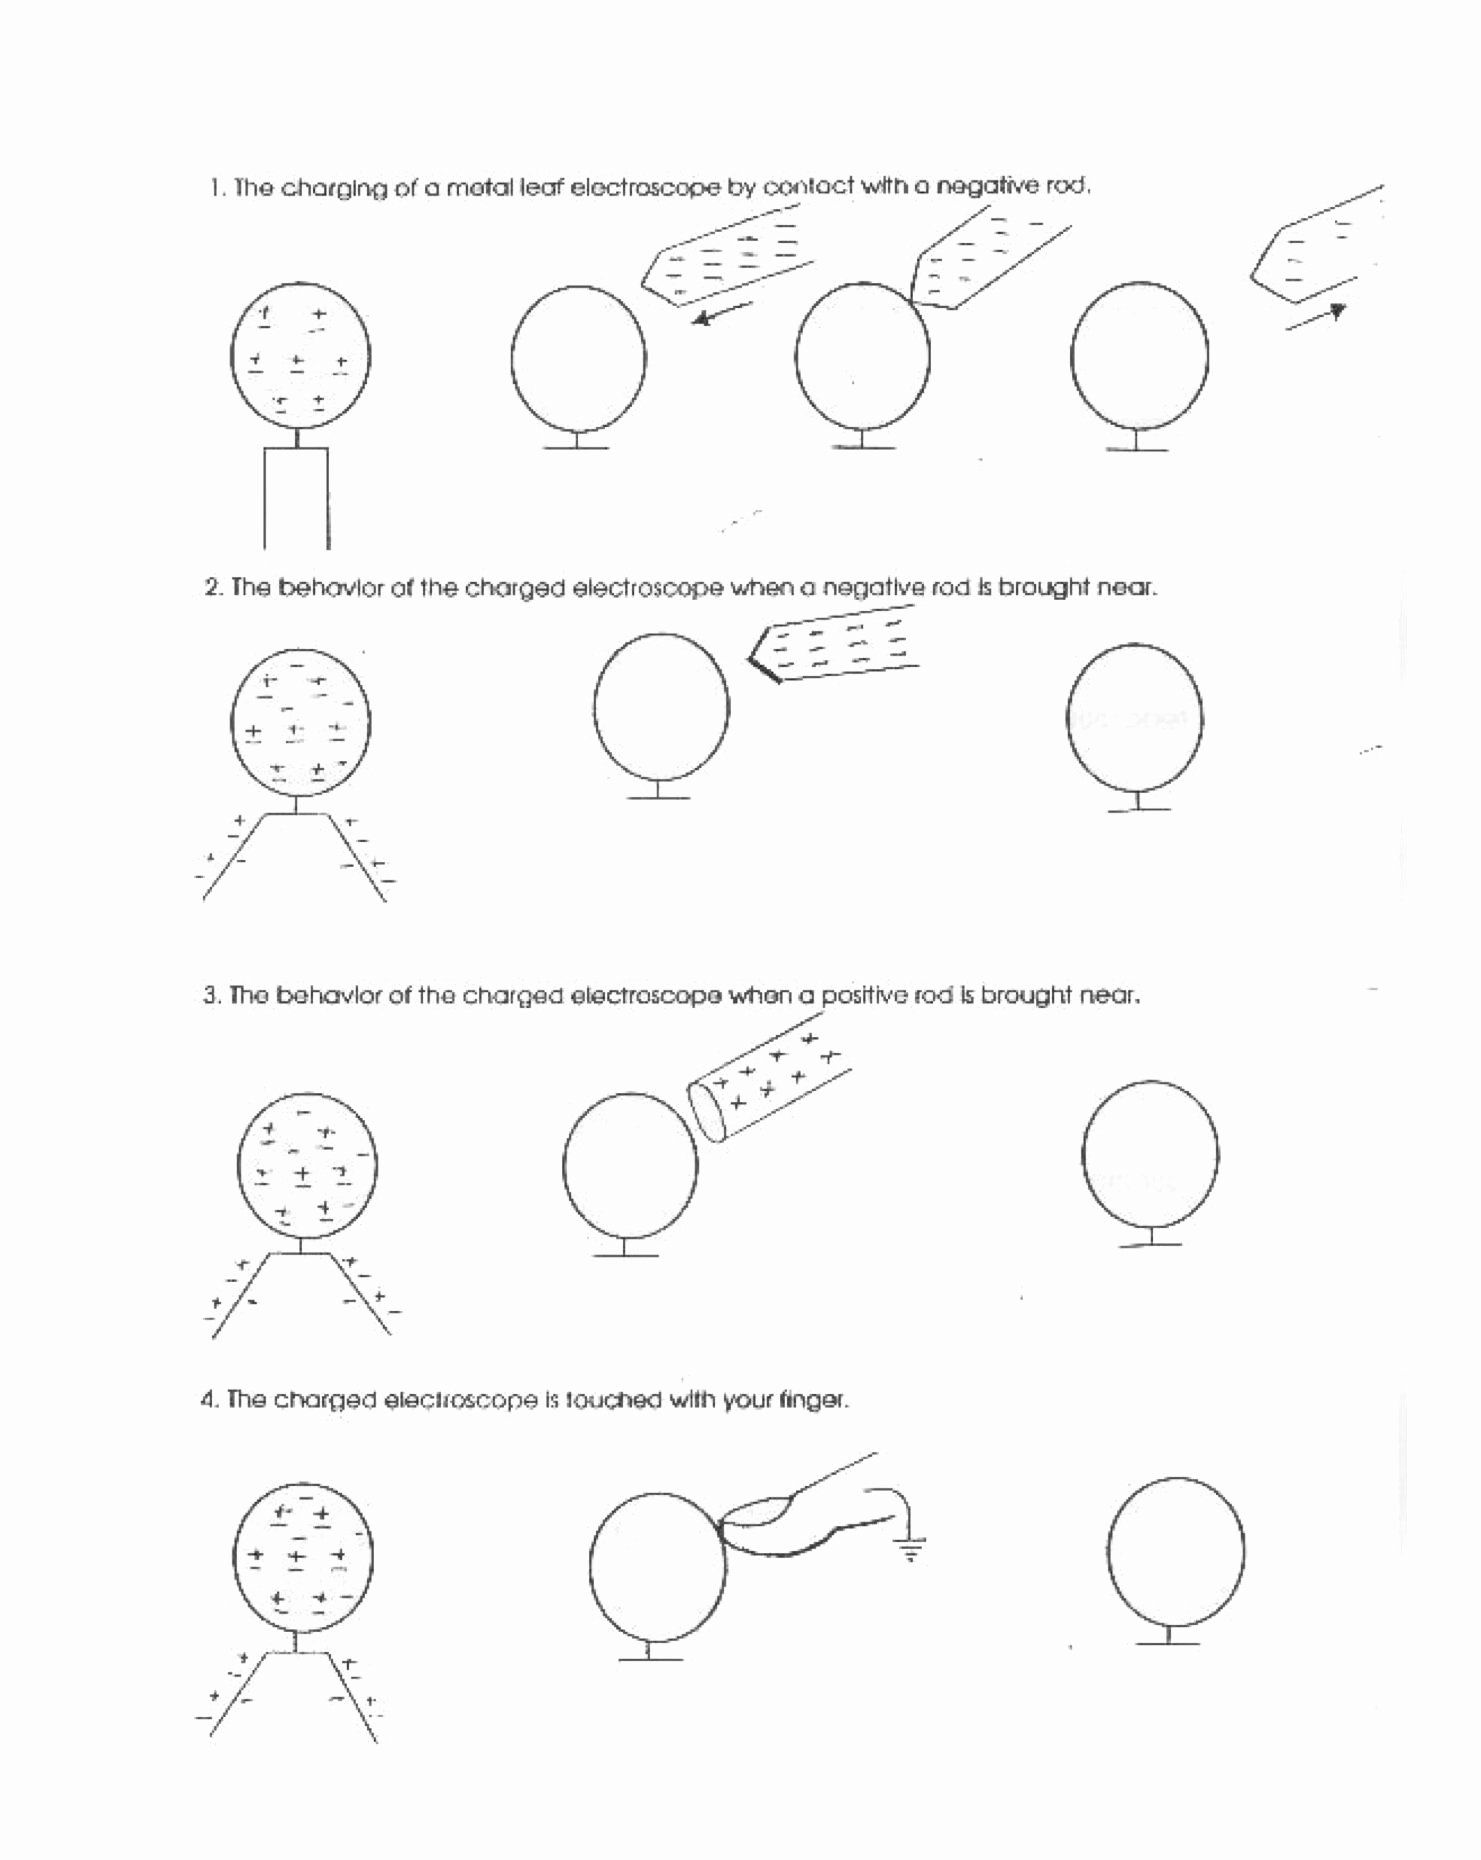 Static Electricity Worksheet Answers Inspirational Metal Leaf Electroscope  Contact \u0026 Induction Worksheet   Worksheets for kids [ 1860 x 1481 Pixel ]